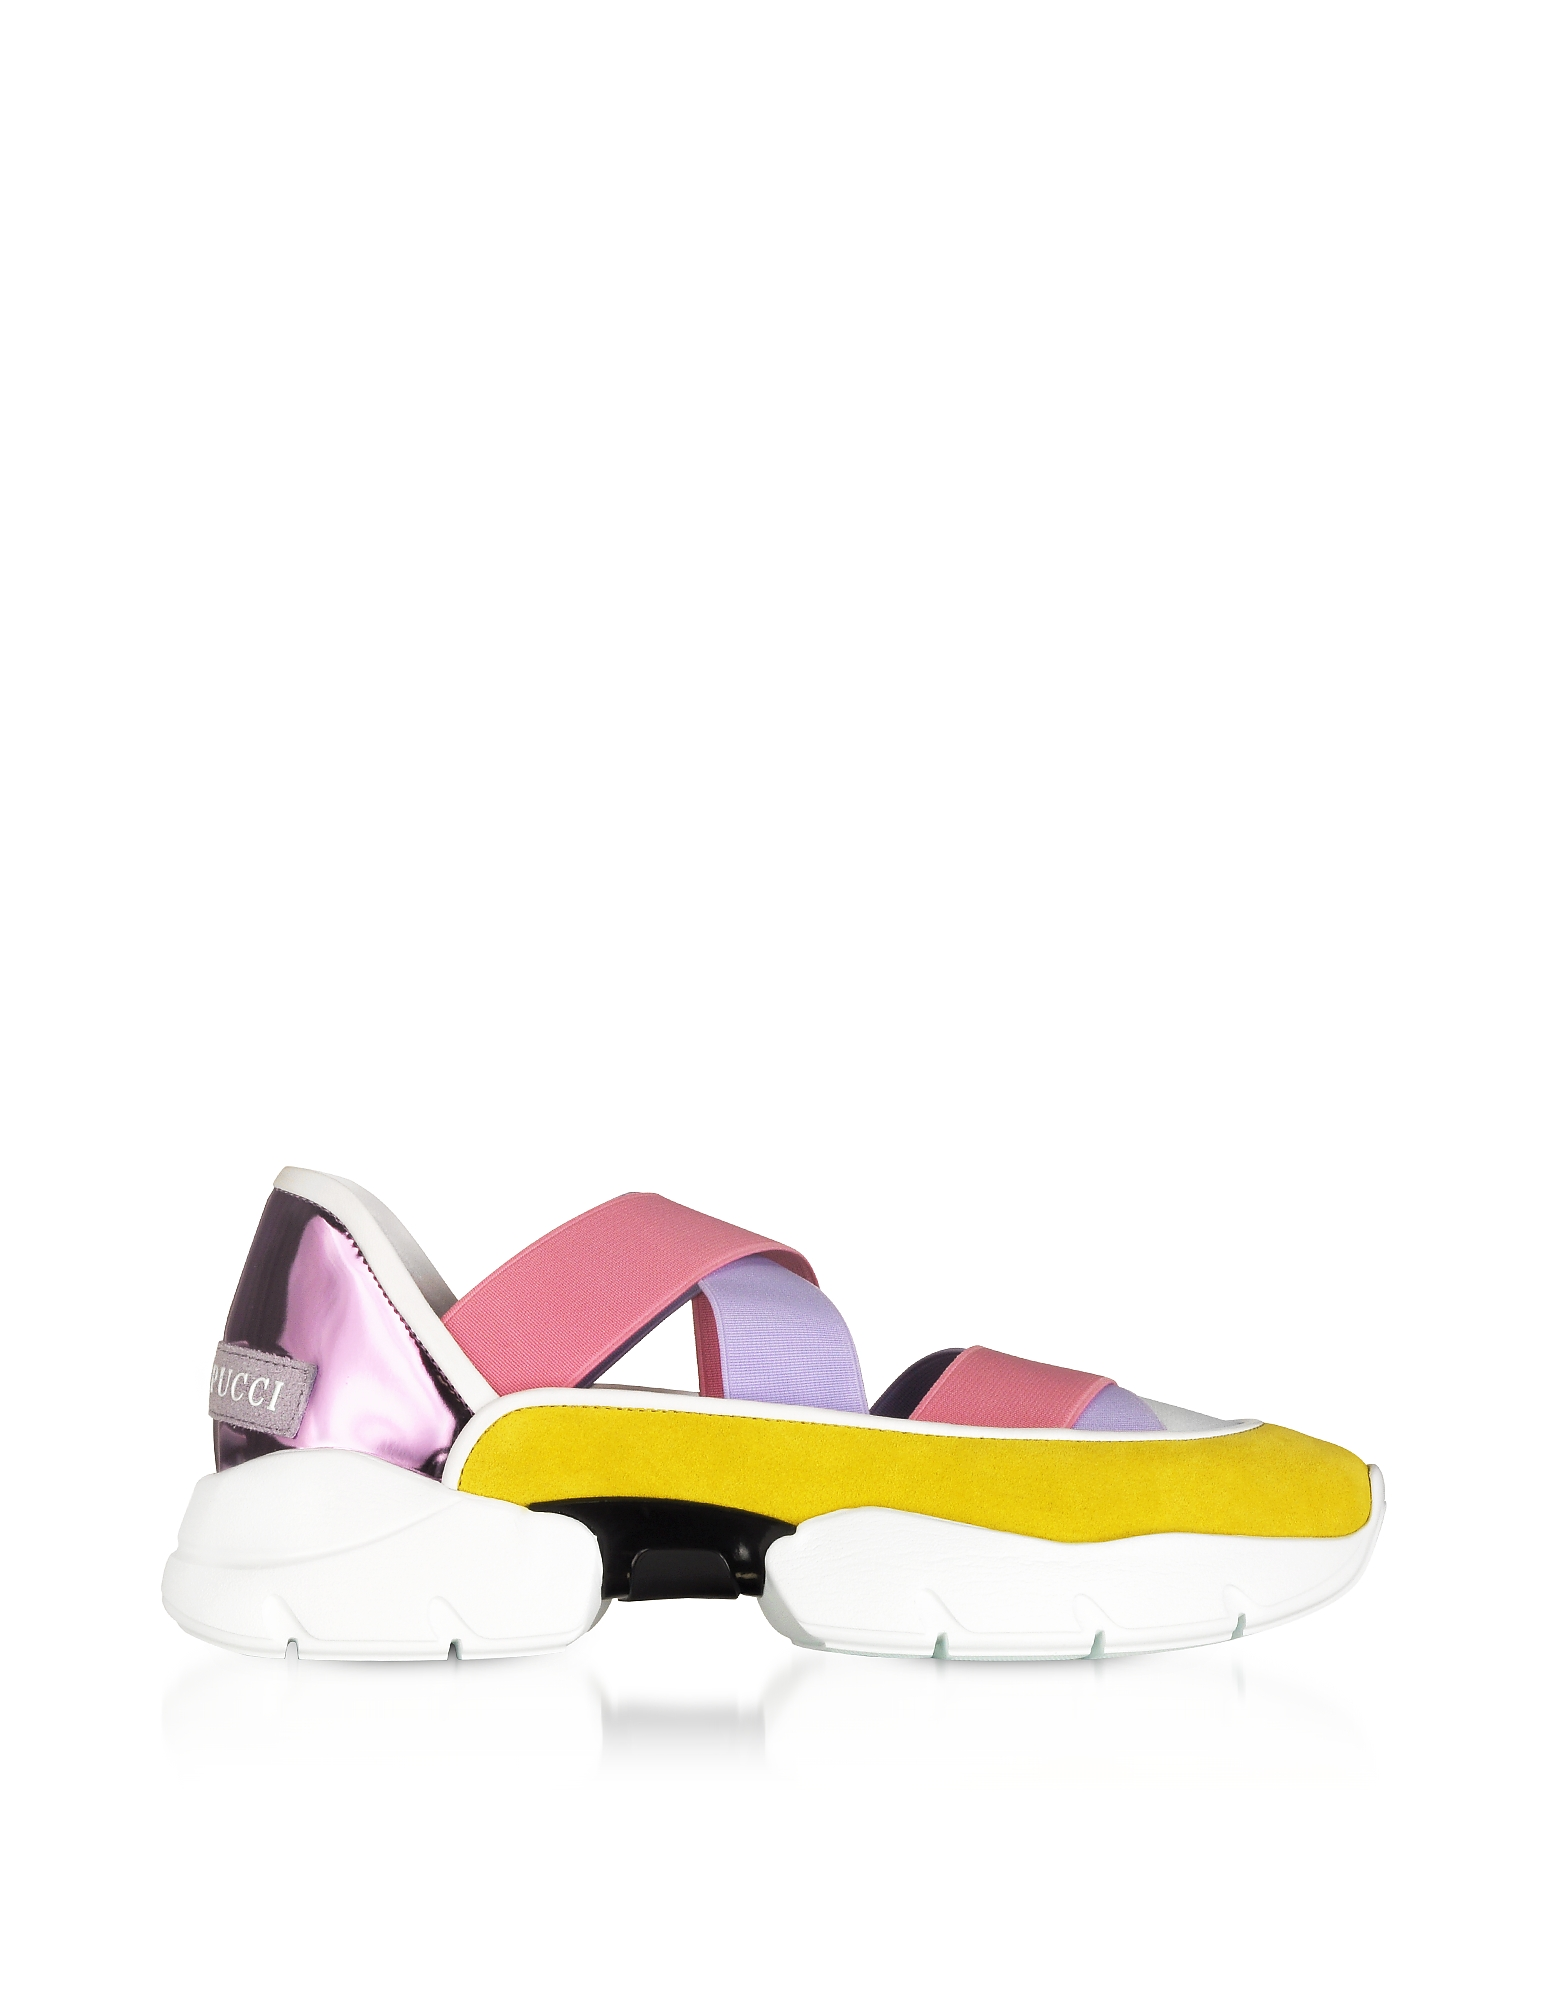 Emilio Pucci Shoes, City Dance Suede Sneakers